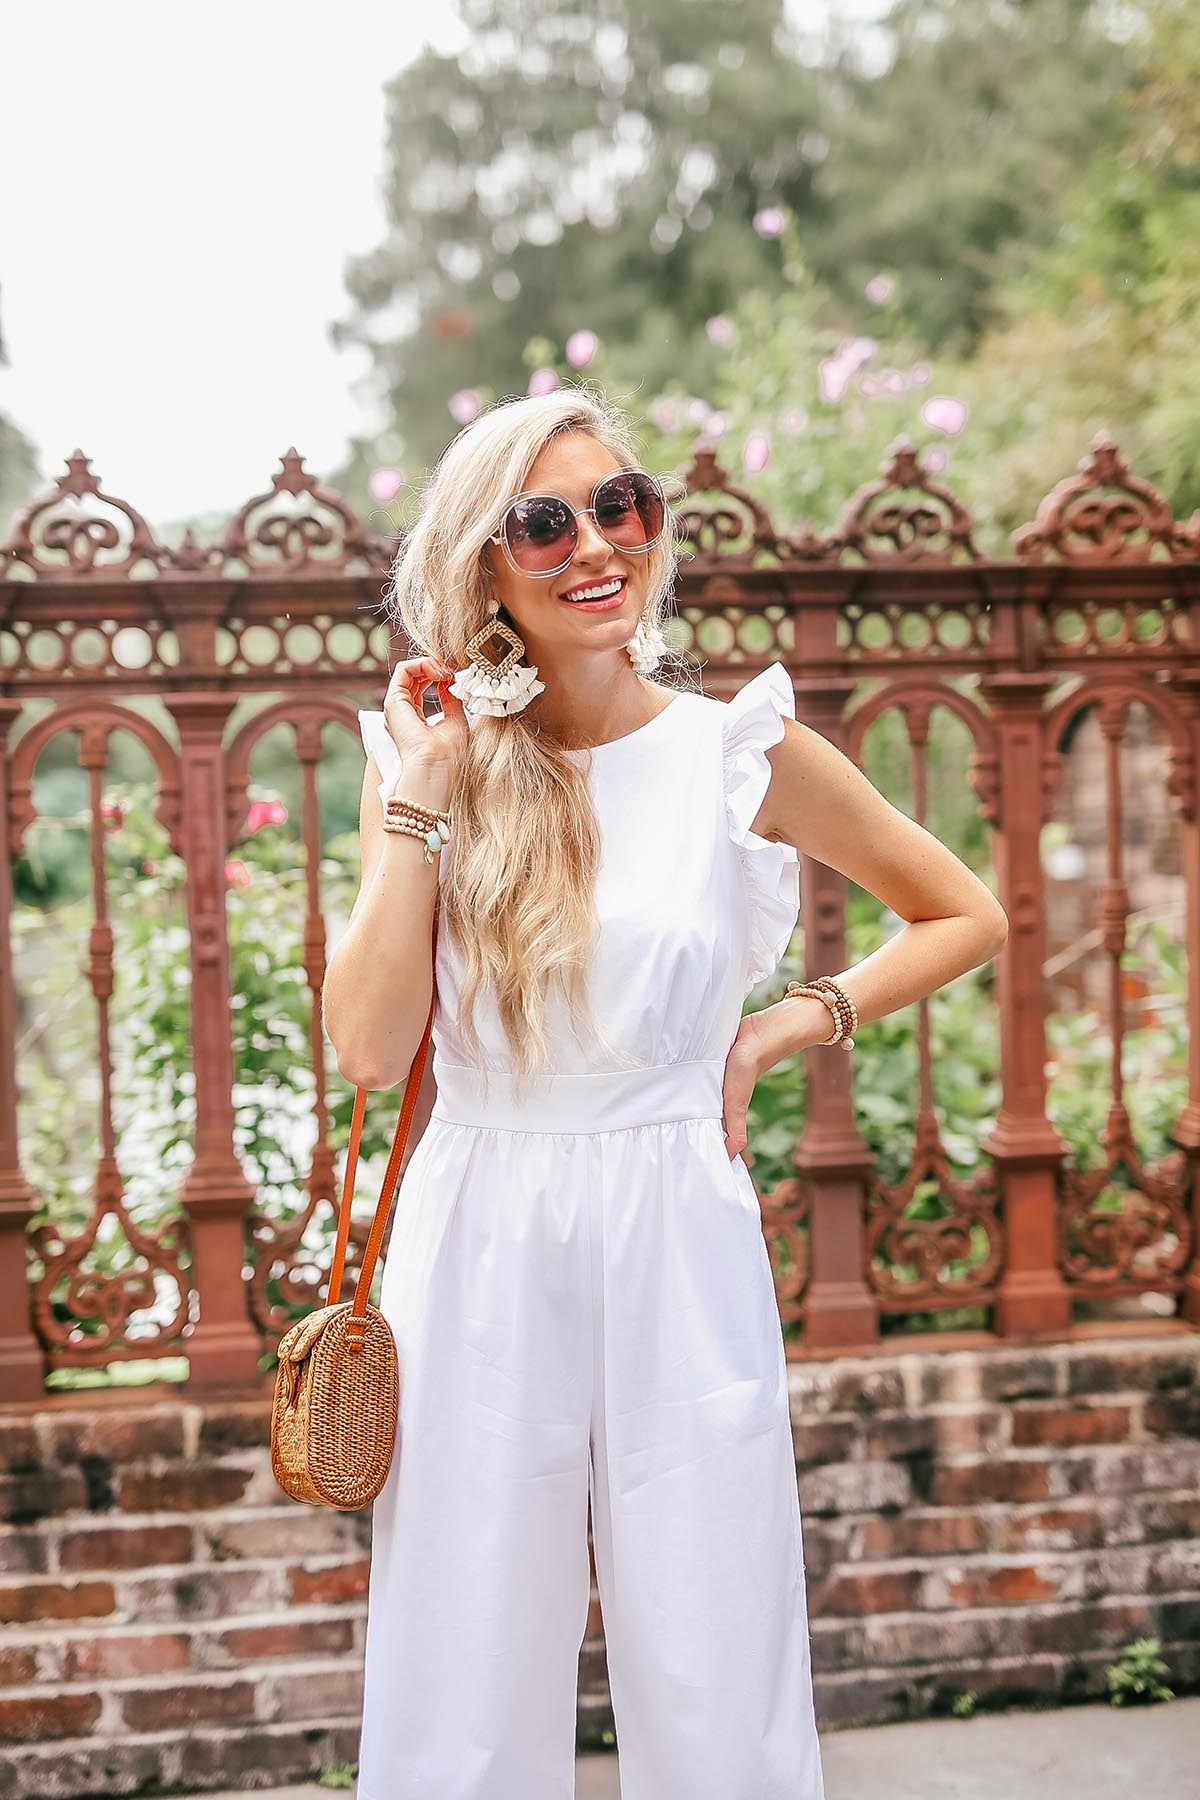 One Fashion Trend That Never Goes Out of Style | Nordstrom 1901 Brand | White Jumpsuit for Summer